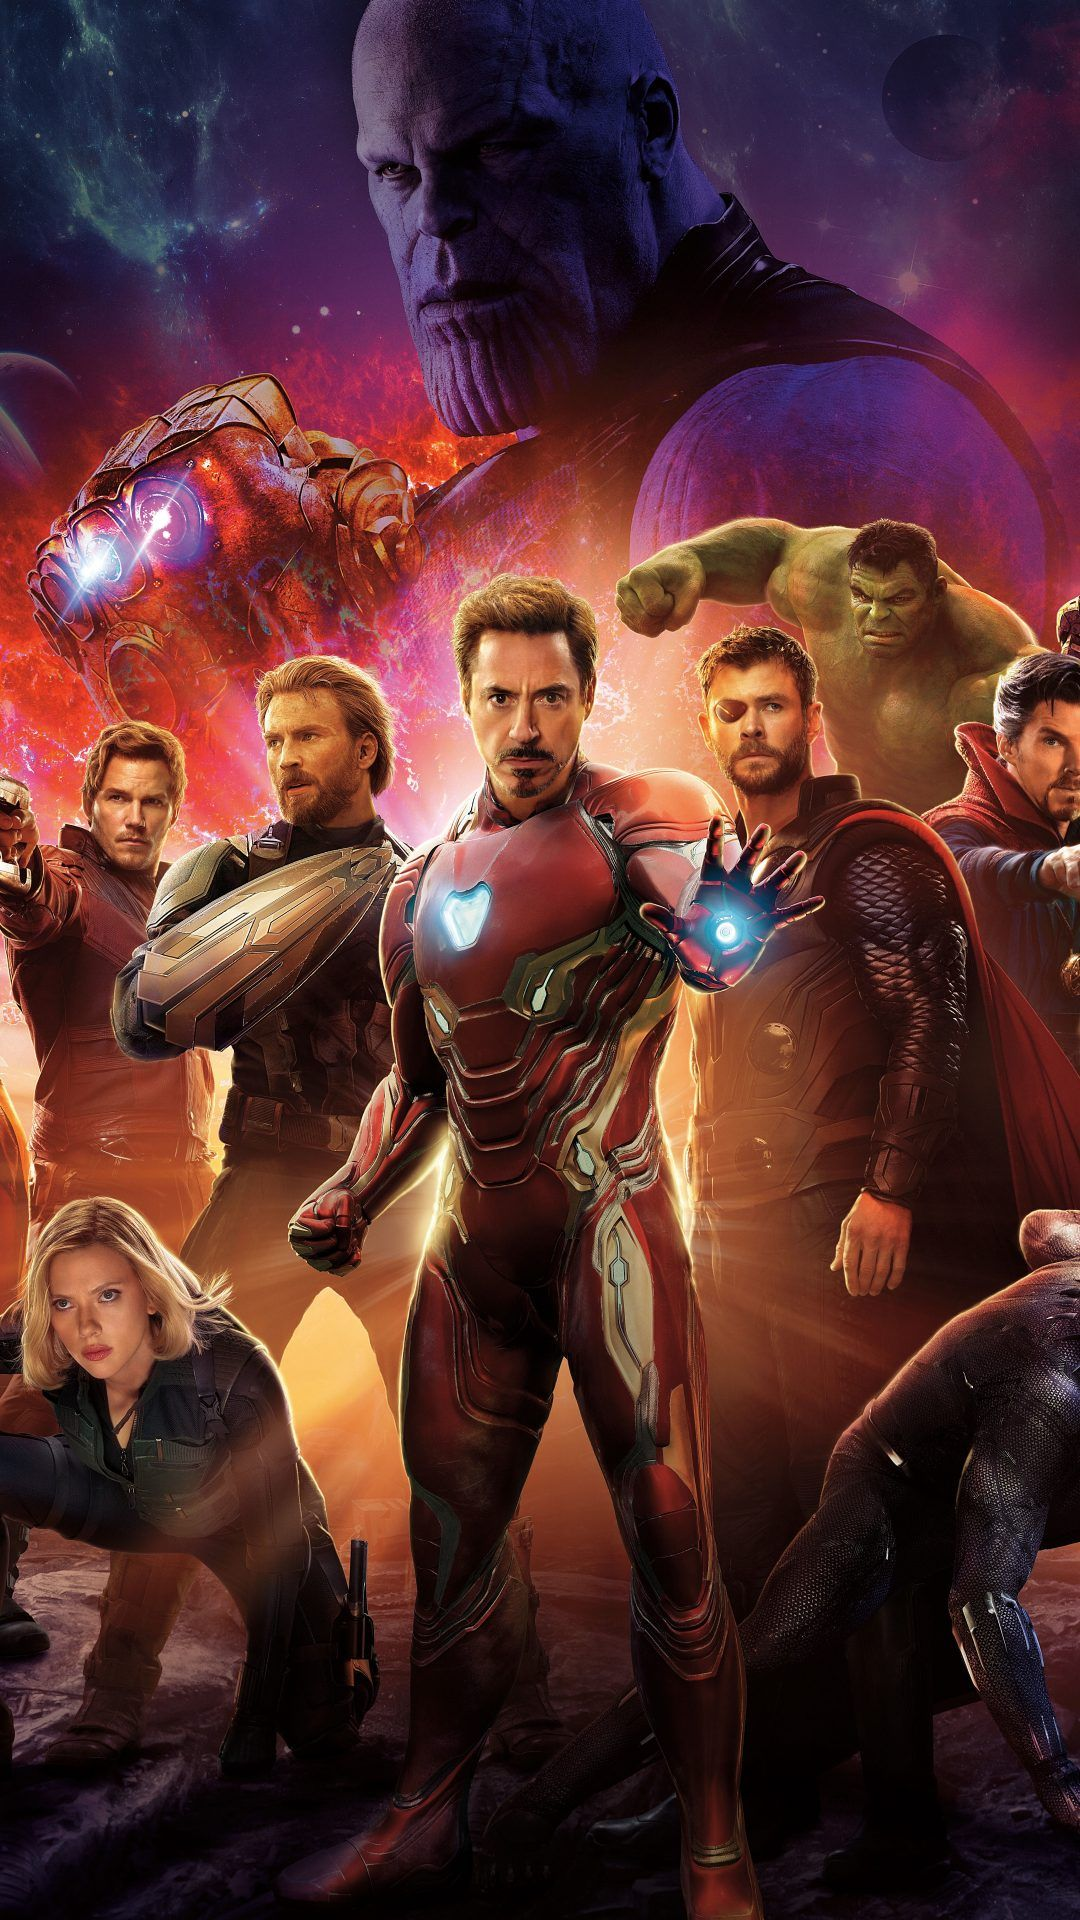 Marvel Infinity War Wallpapers Iphone Hupages Download Iphone Wallpapers Marvel Infinity War Avengers Wallpaper Avengers